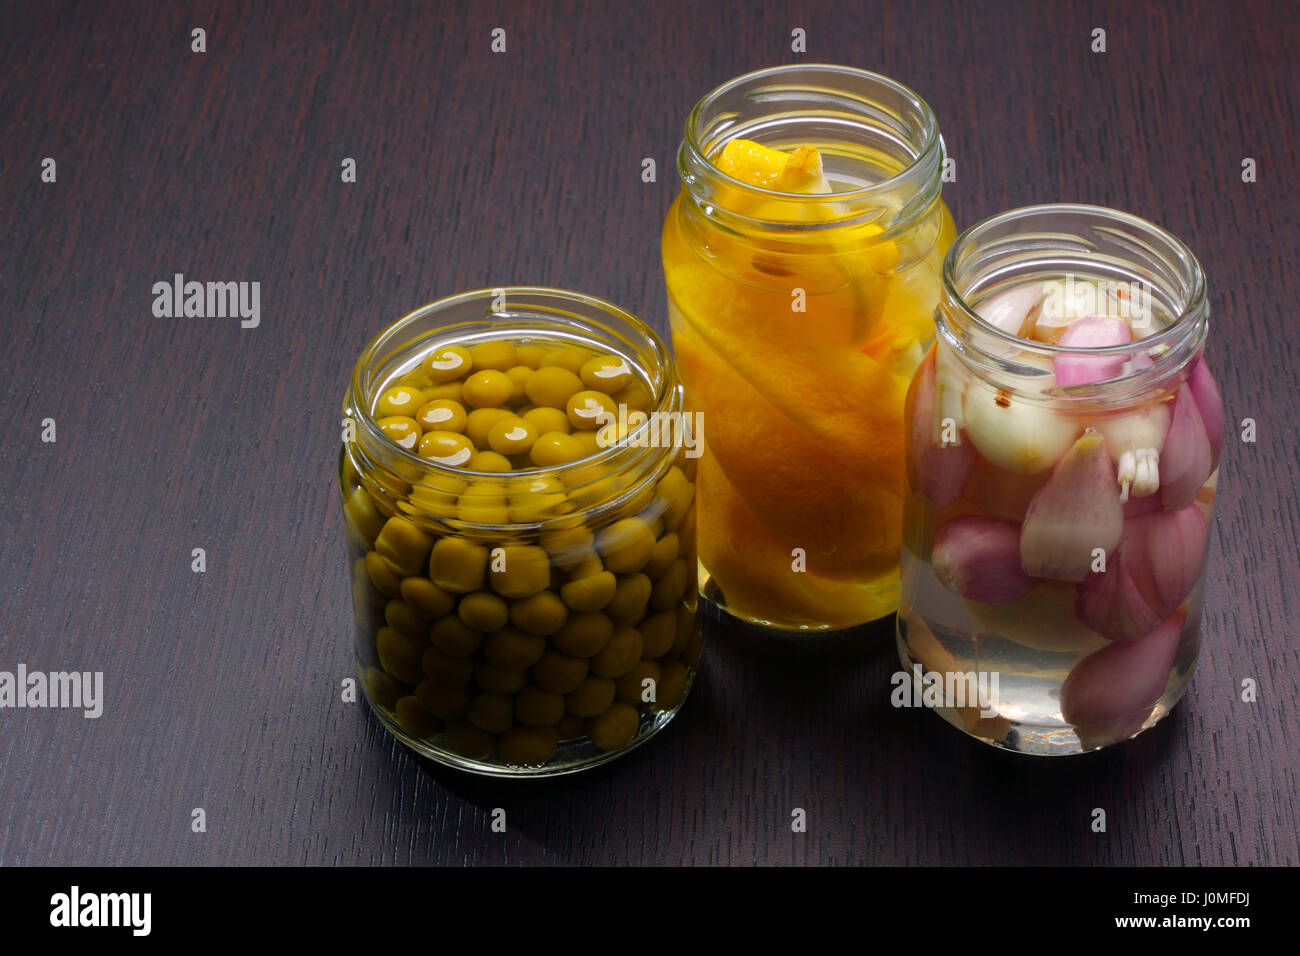 Three opened jars with green peas, onions and lemons on dark board. Copy space on left. - Stock Image